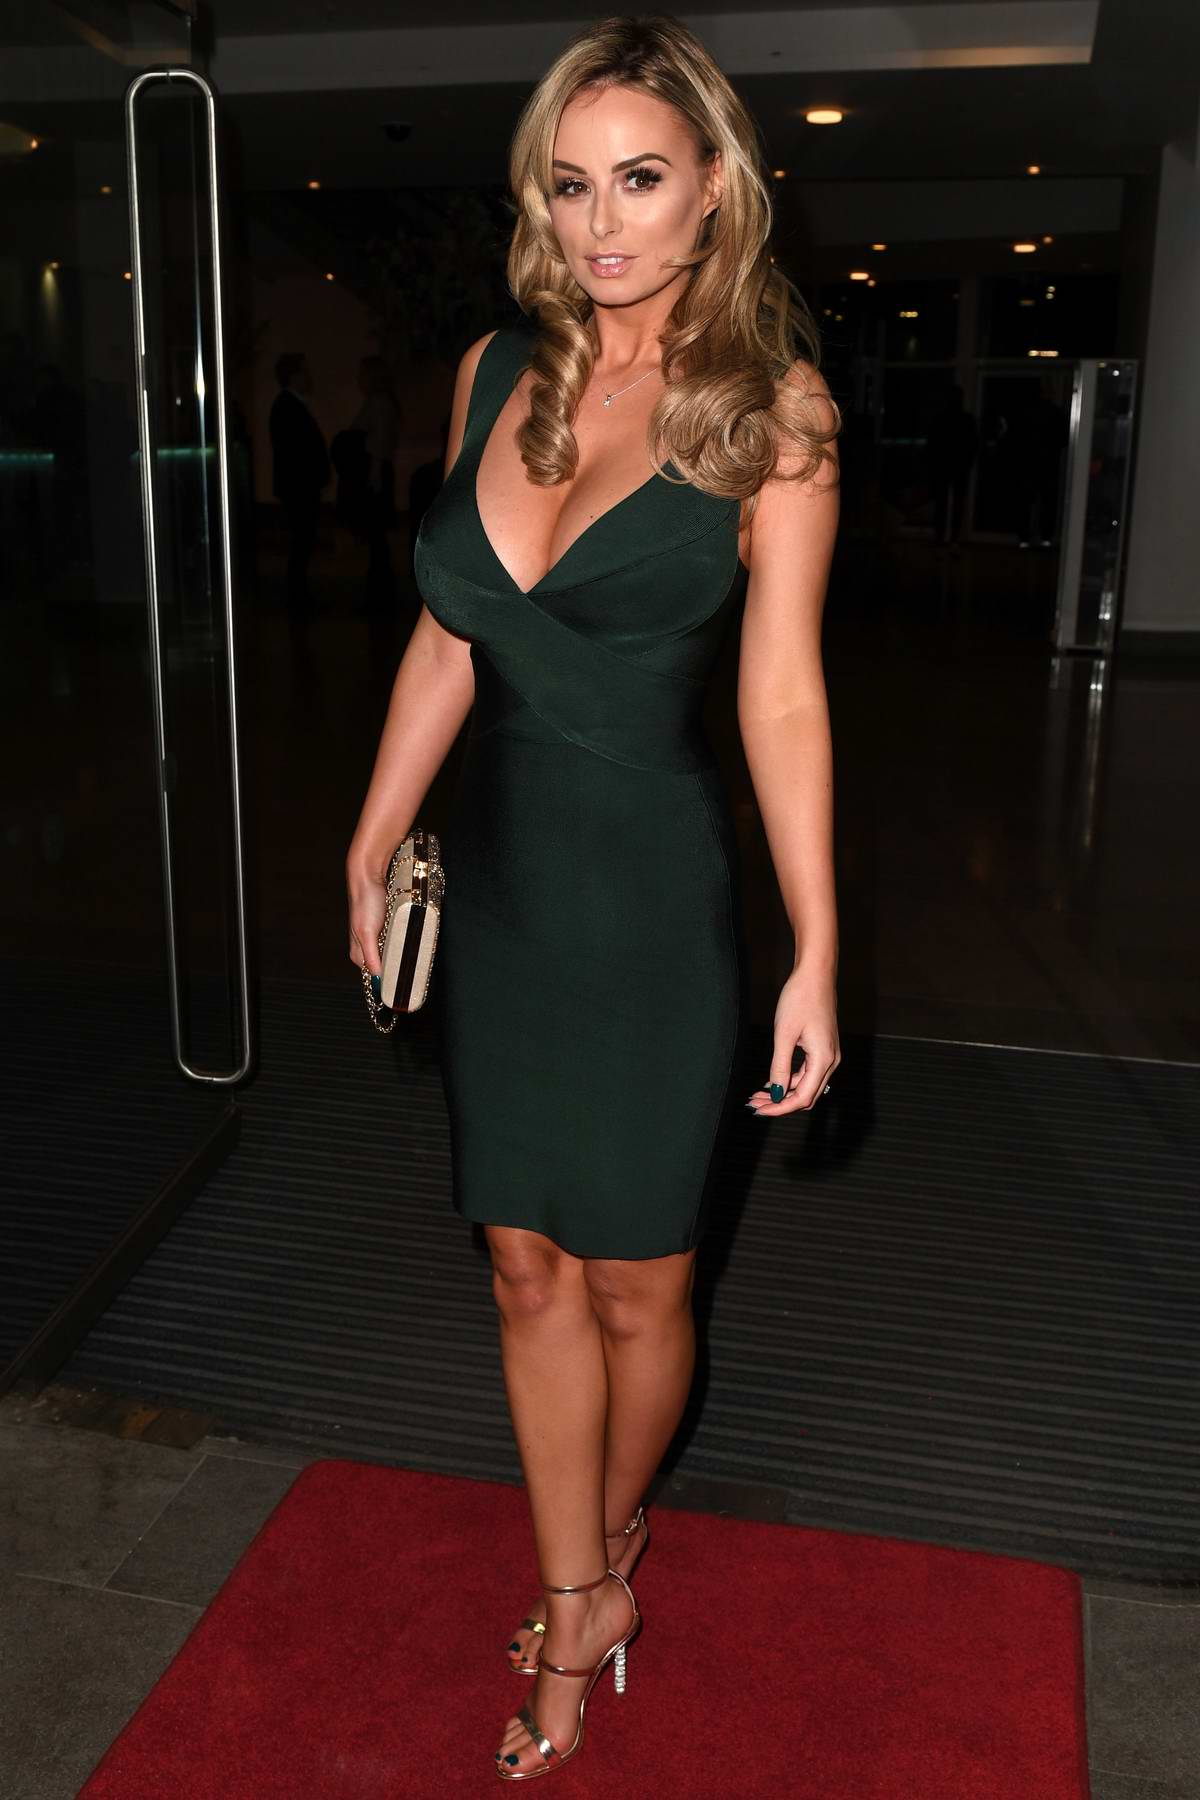 Rhian Sugden attends the Annual Mirror Ball At Lowry Hotel in Manchester, UK